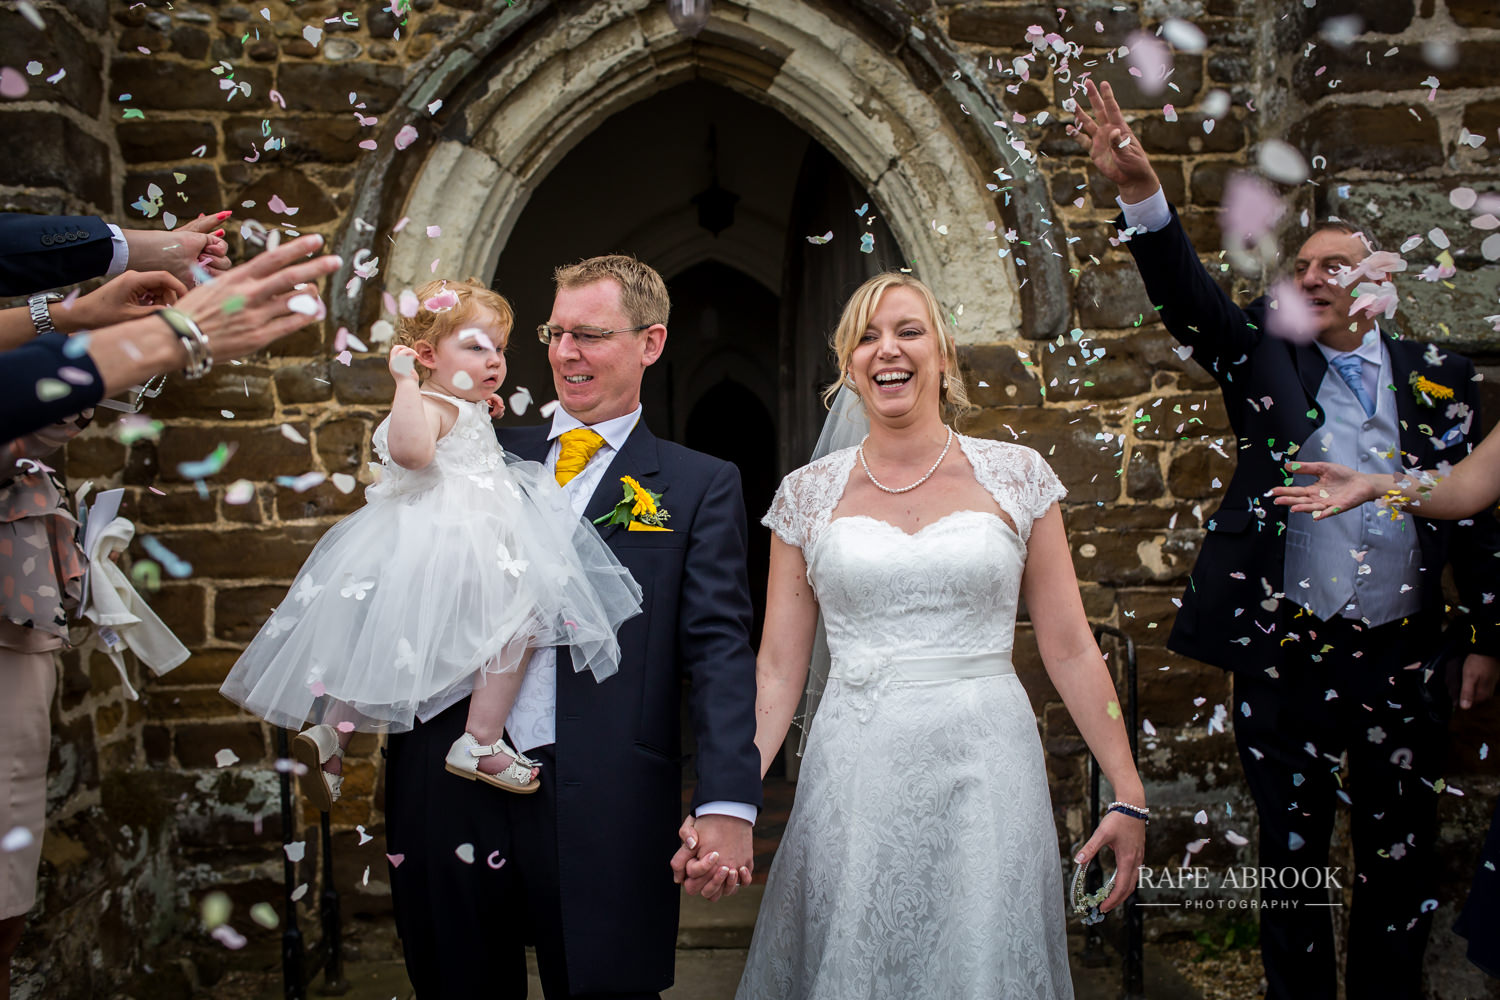 minstrel court wedding royston cambridge hertfordshire wedding photographer-1200.jpg